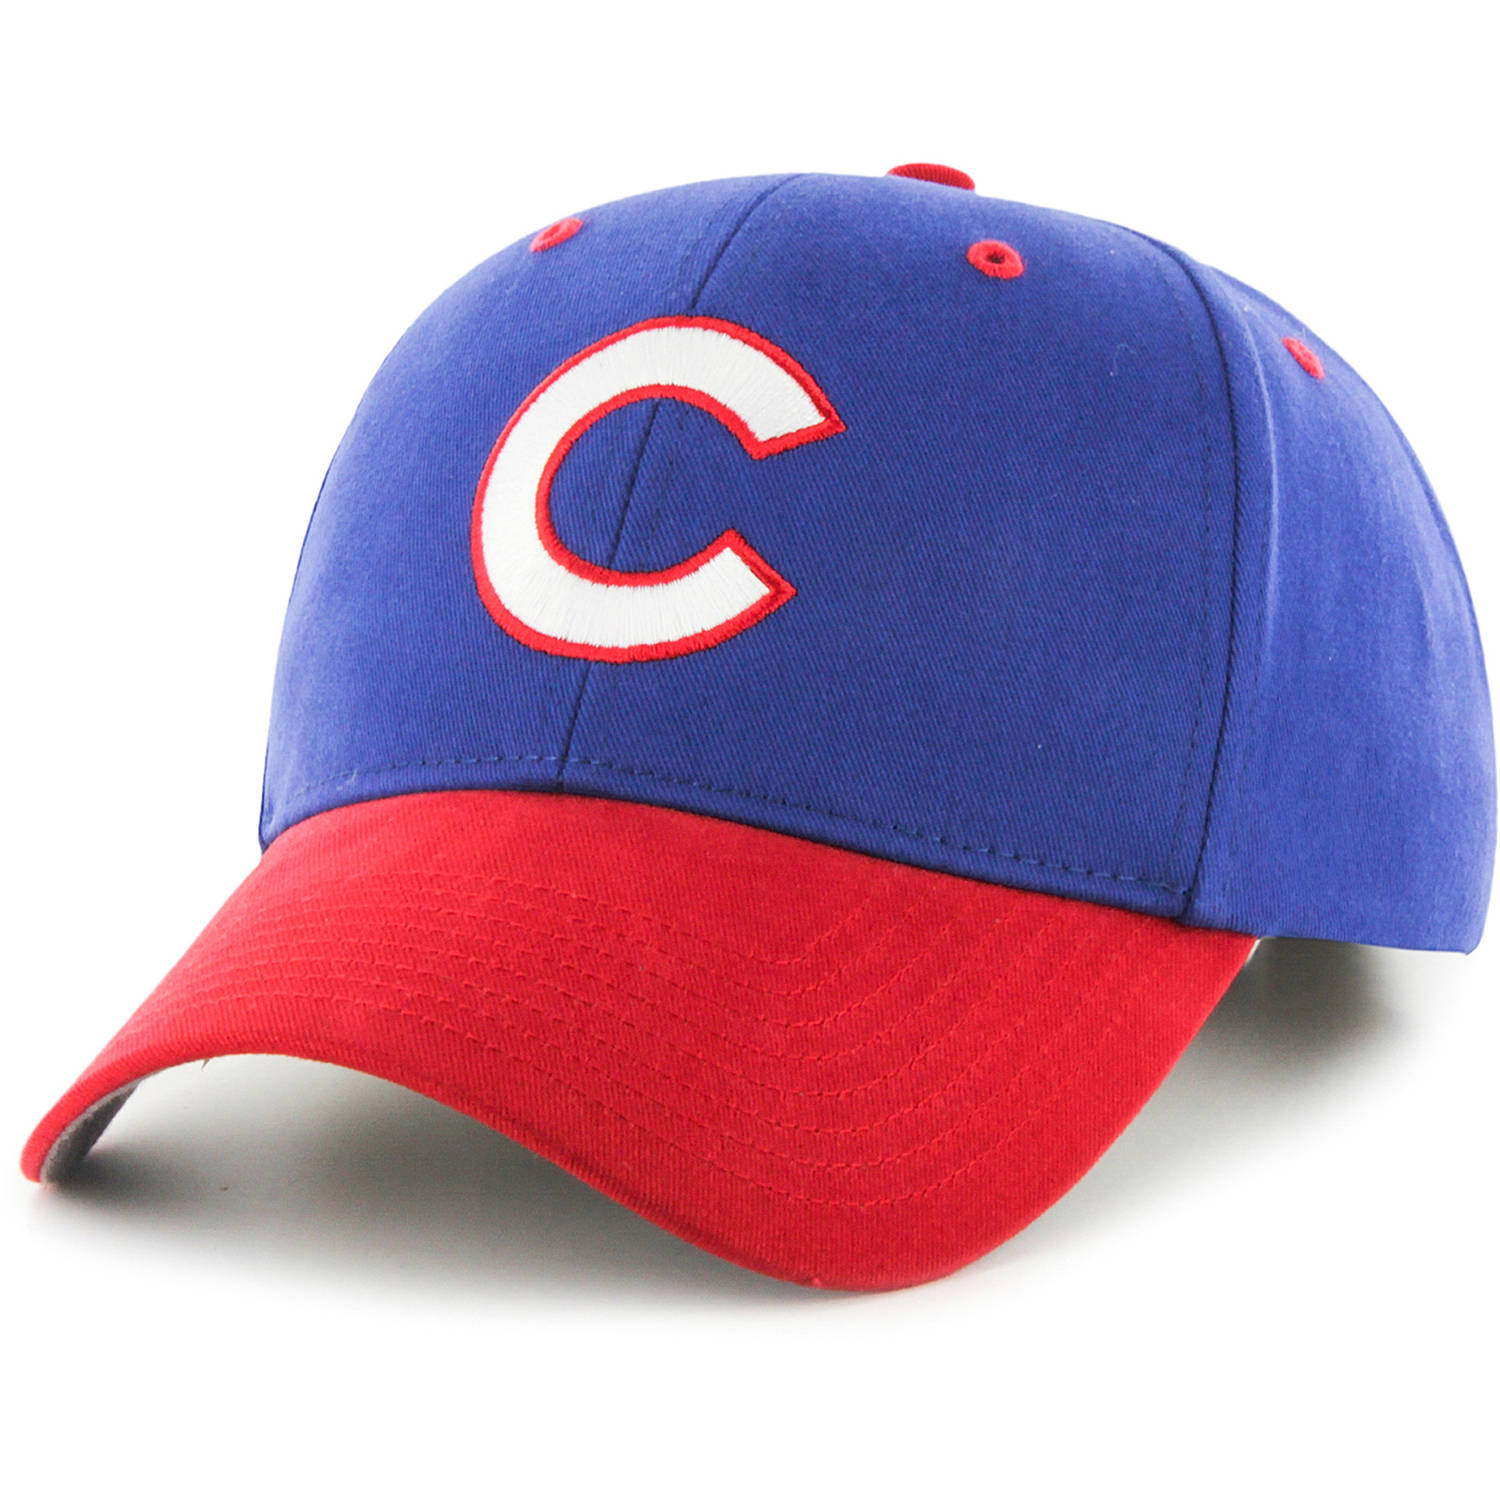 MLB Chicago Cubs Basic Cap/Hat by Fan Favorite